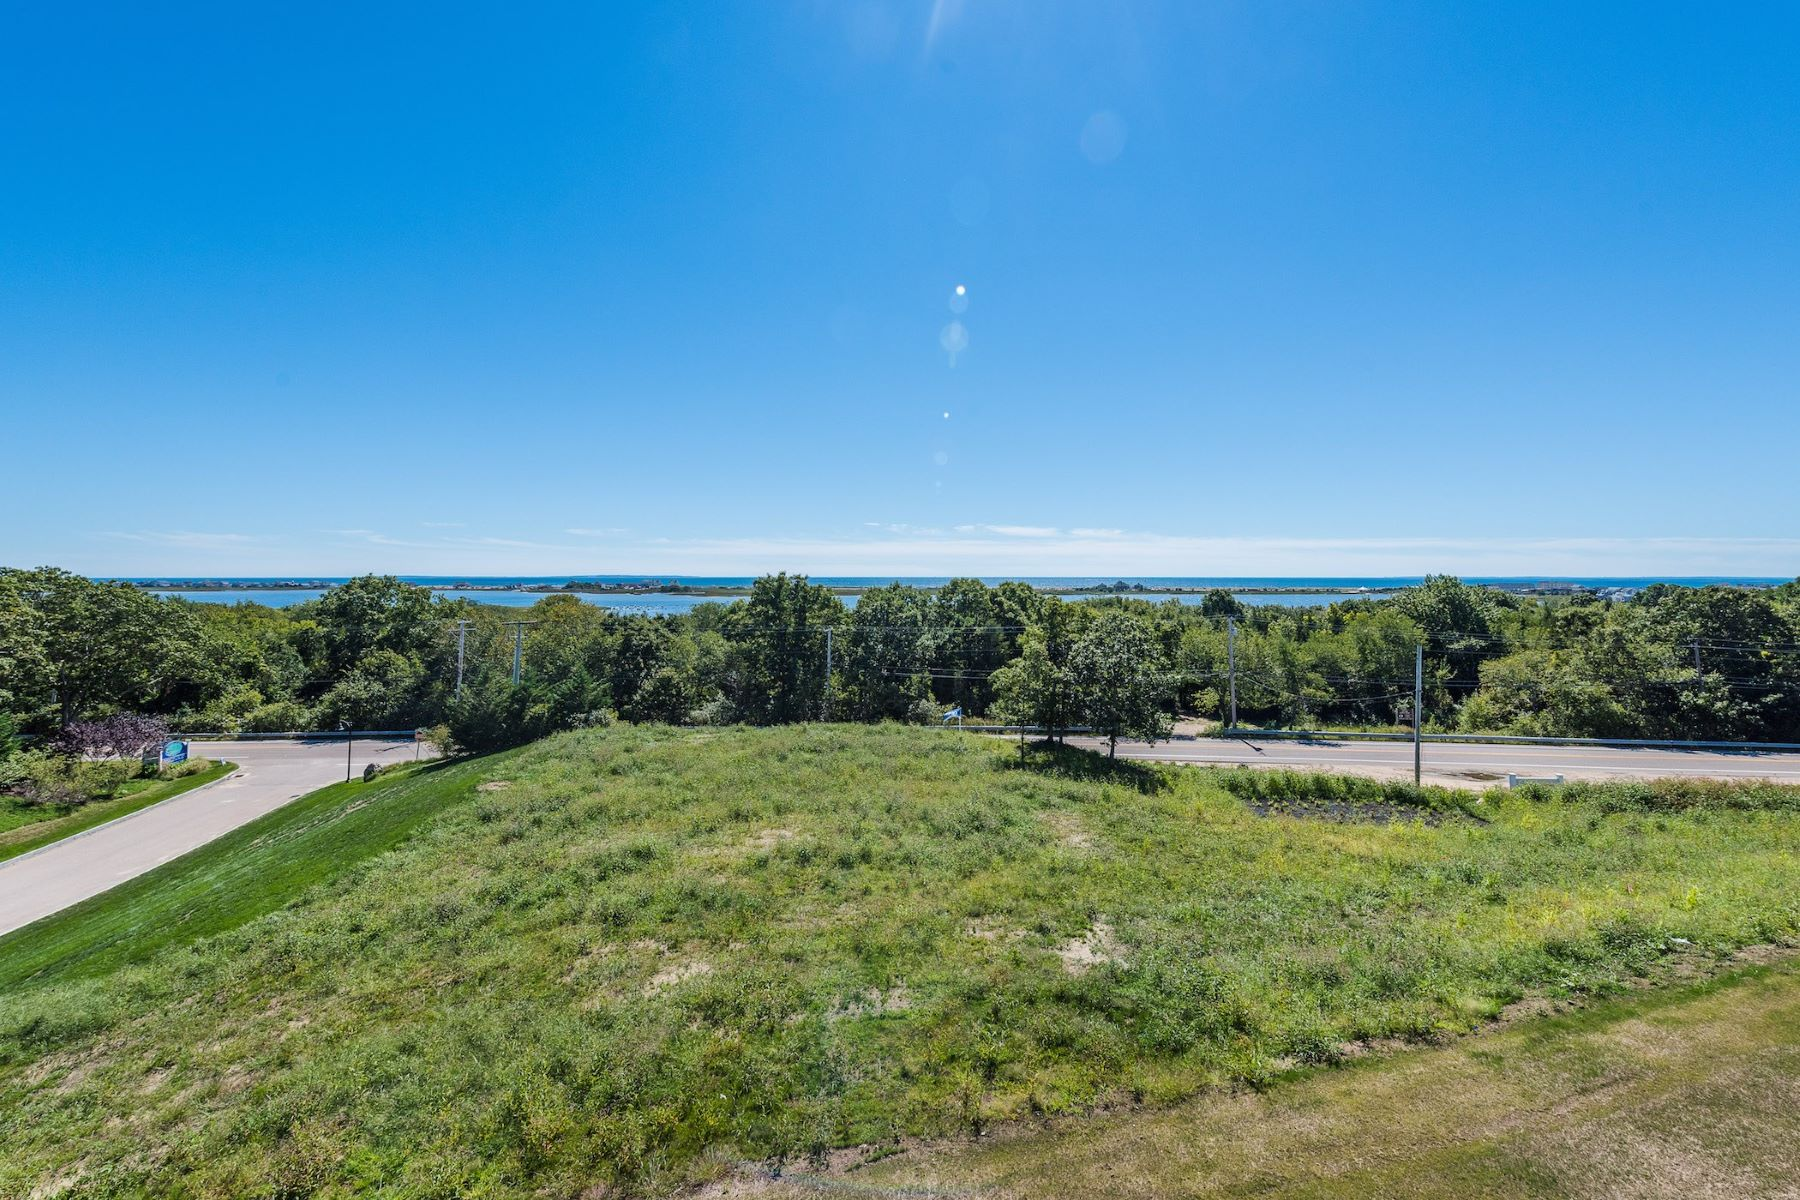 Additional photo for property listing at 7 Compass Wy D301, #D301, Westerly, RI 7 Compass Wy D301 D301 Westerly, Rhode Island 02891 United States